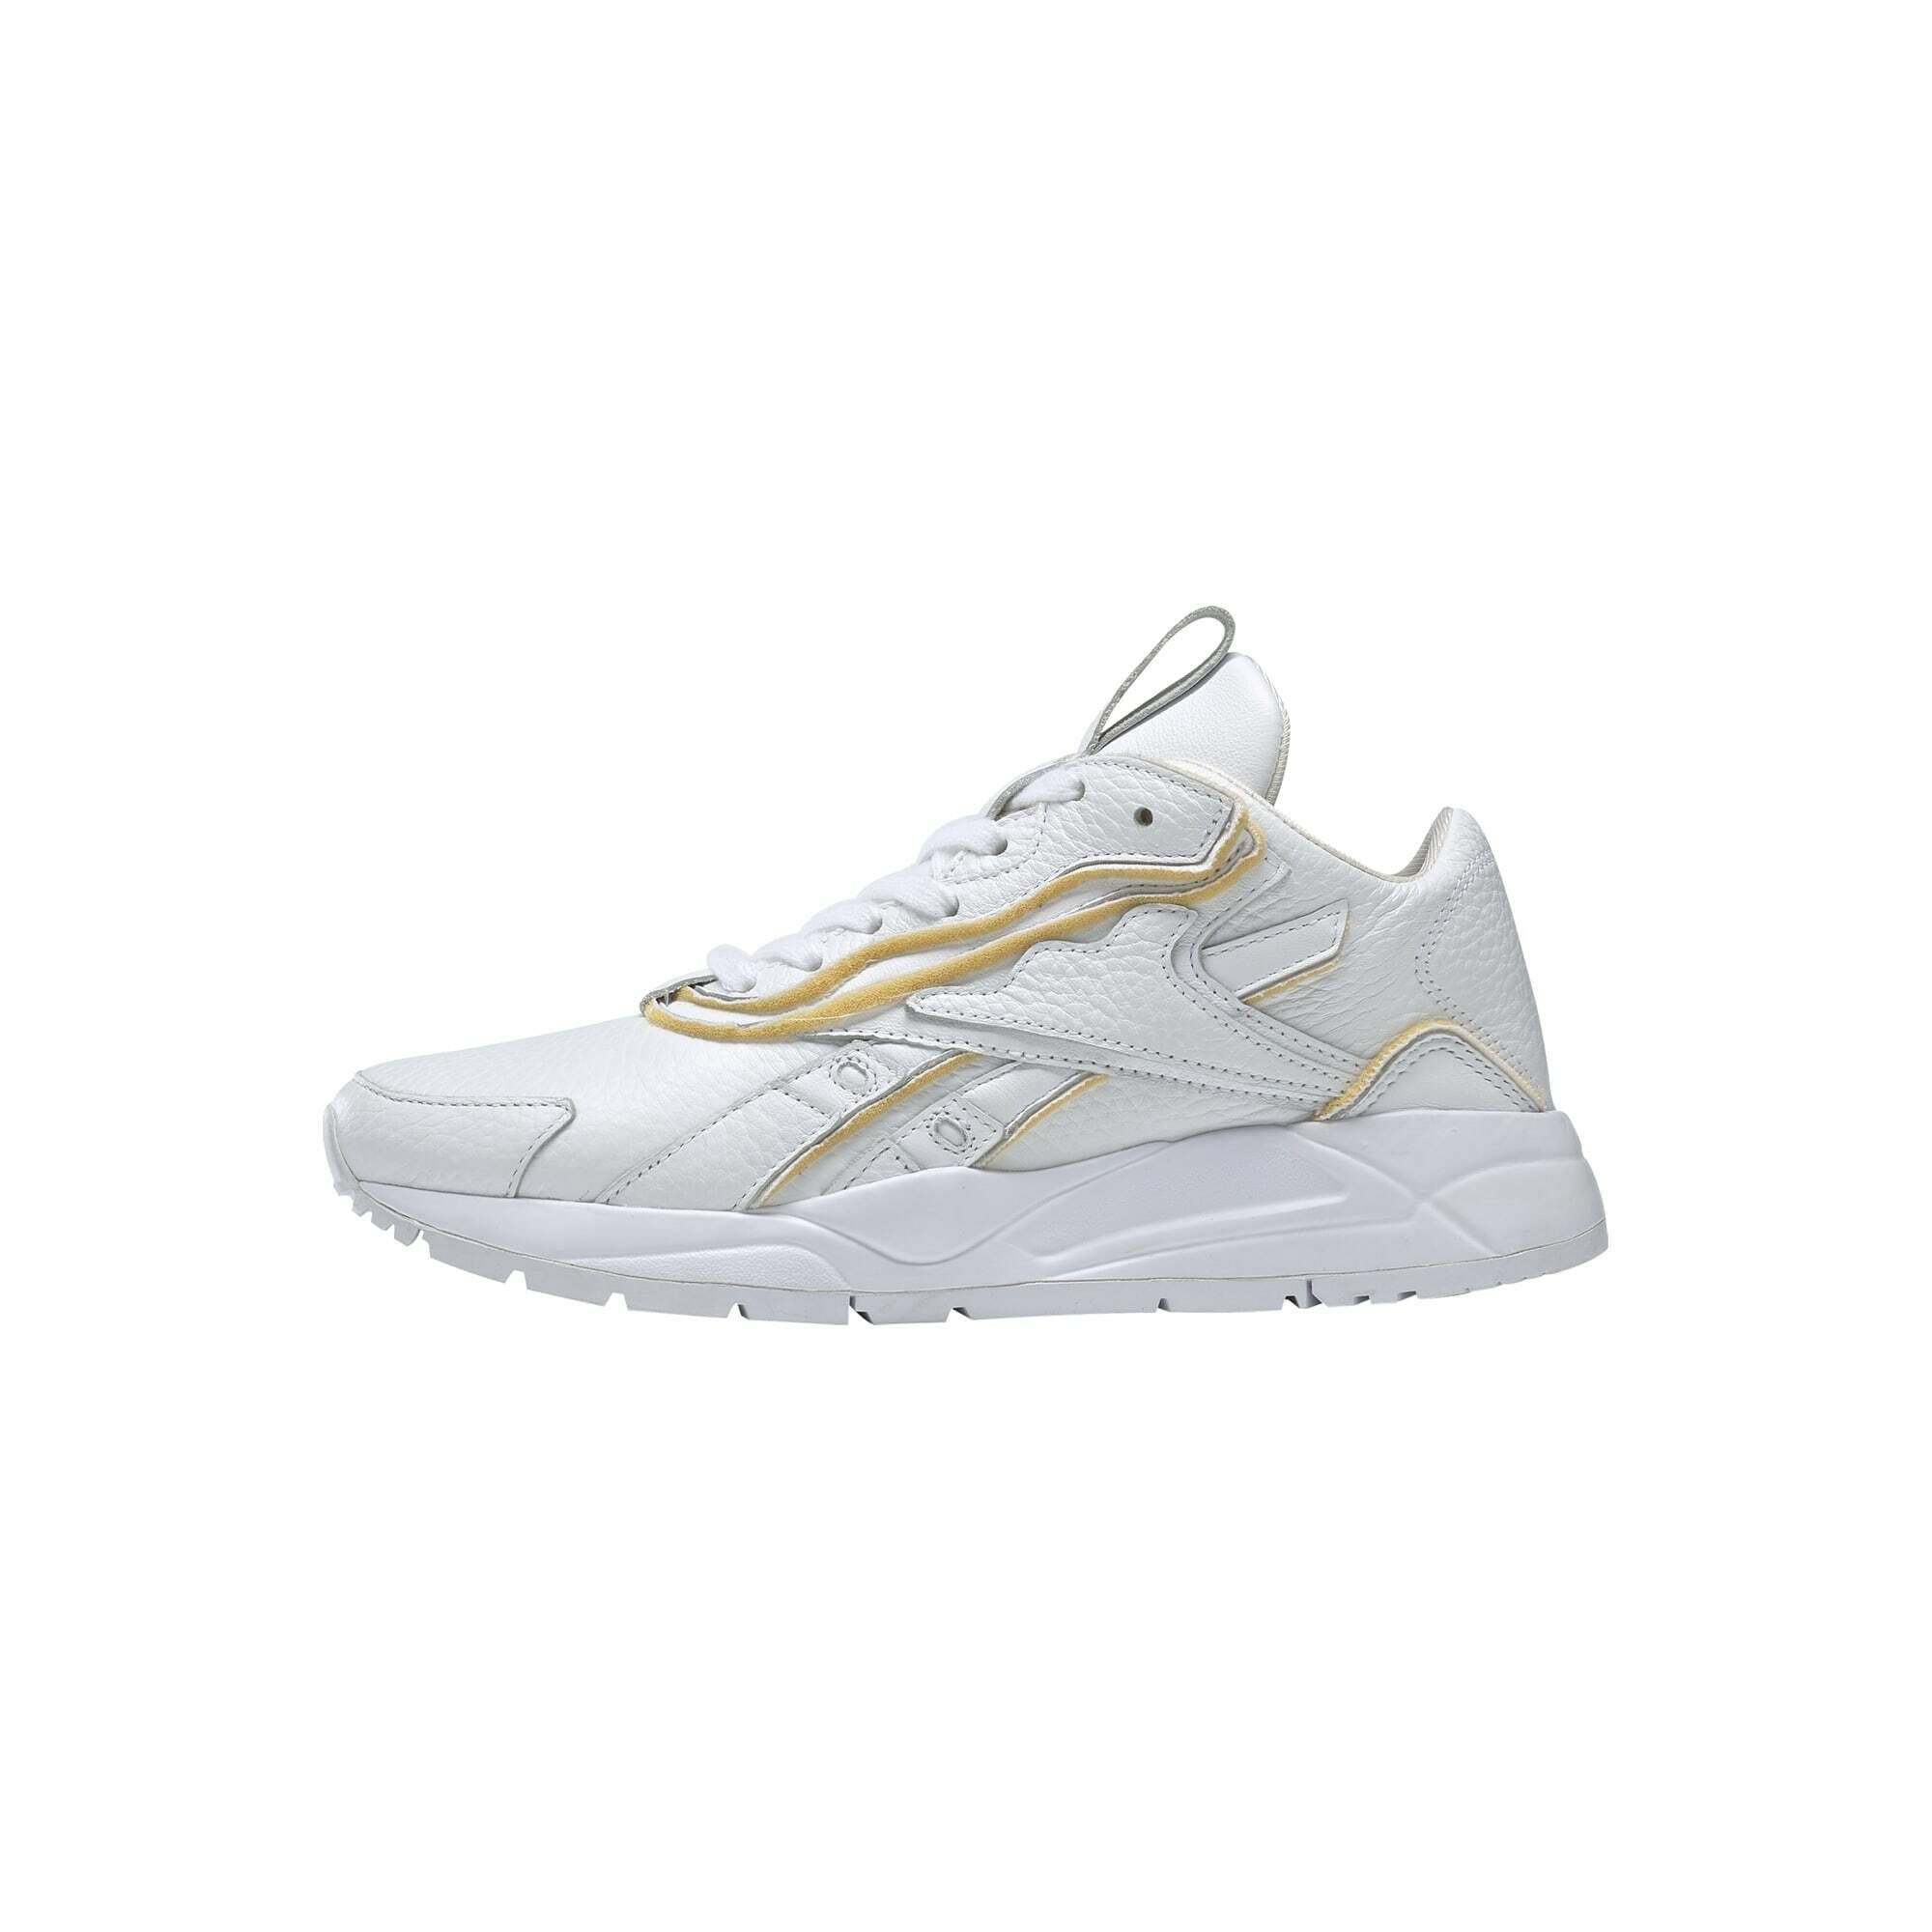 Reebok Classic »VB Bolton Leather Shoes« Trainingsschuh online kaufen | OTTO